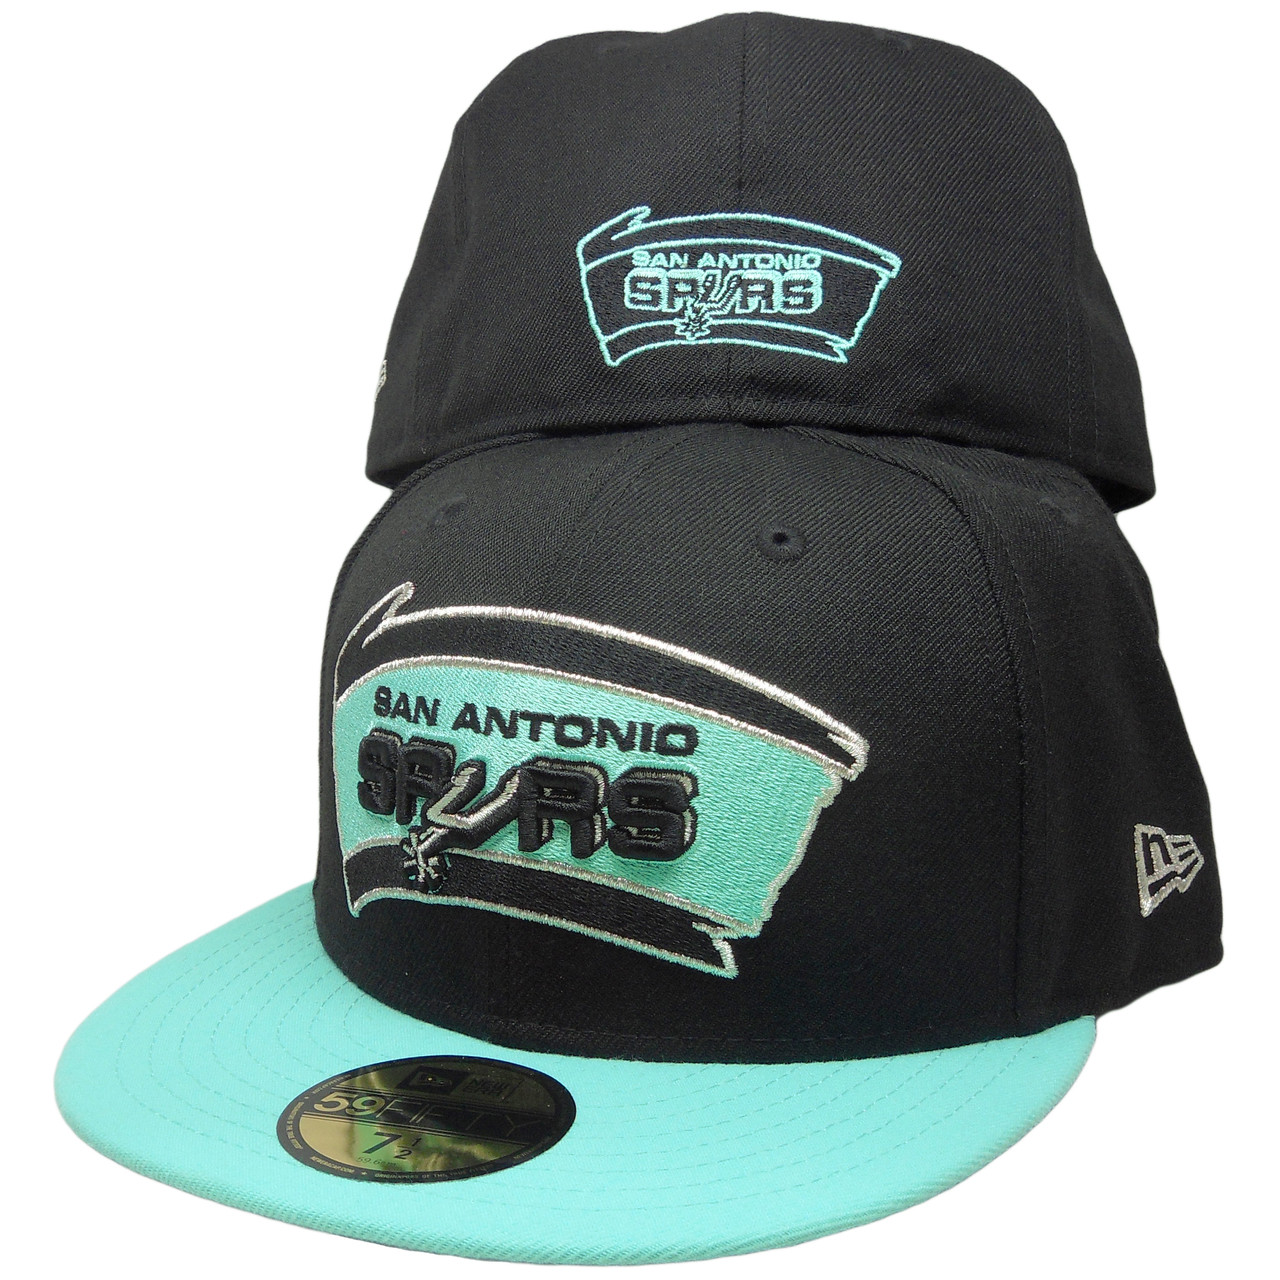 ... cheapest san antonio spurs custom new era 59fifty fitted black mint  green silver. larger more 53de7b410116